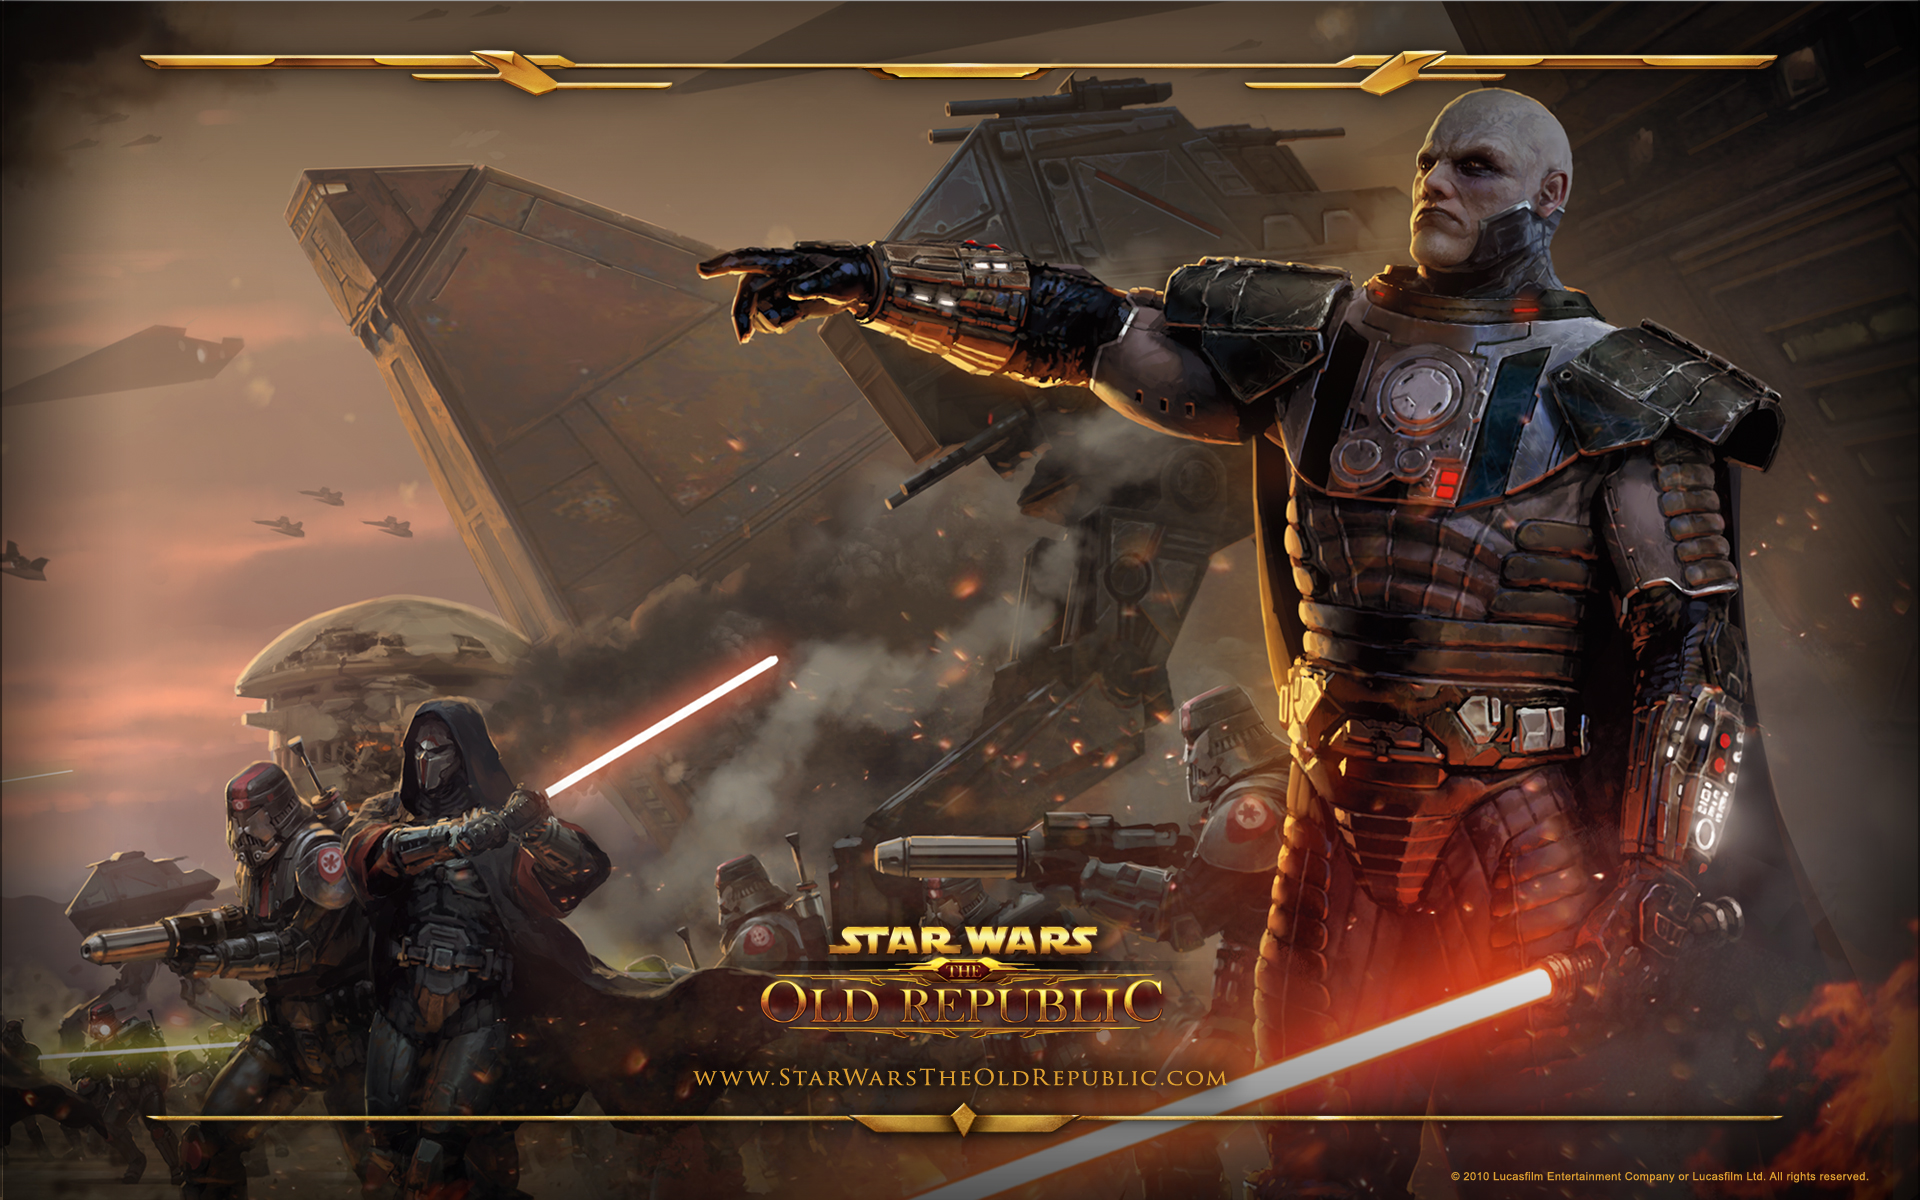 Star Wars The Old Republic Wallpaper Sith Armt